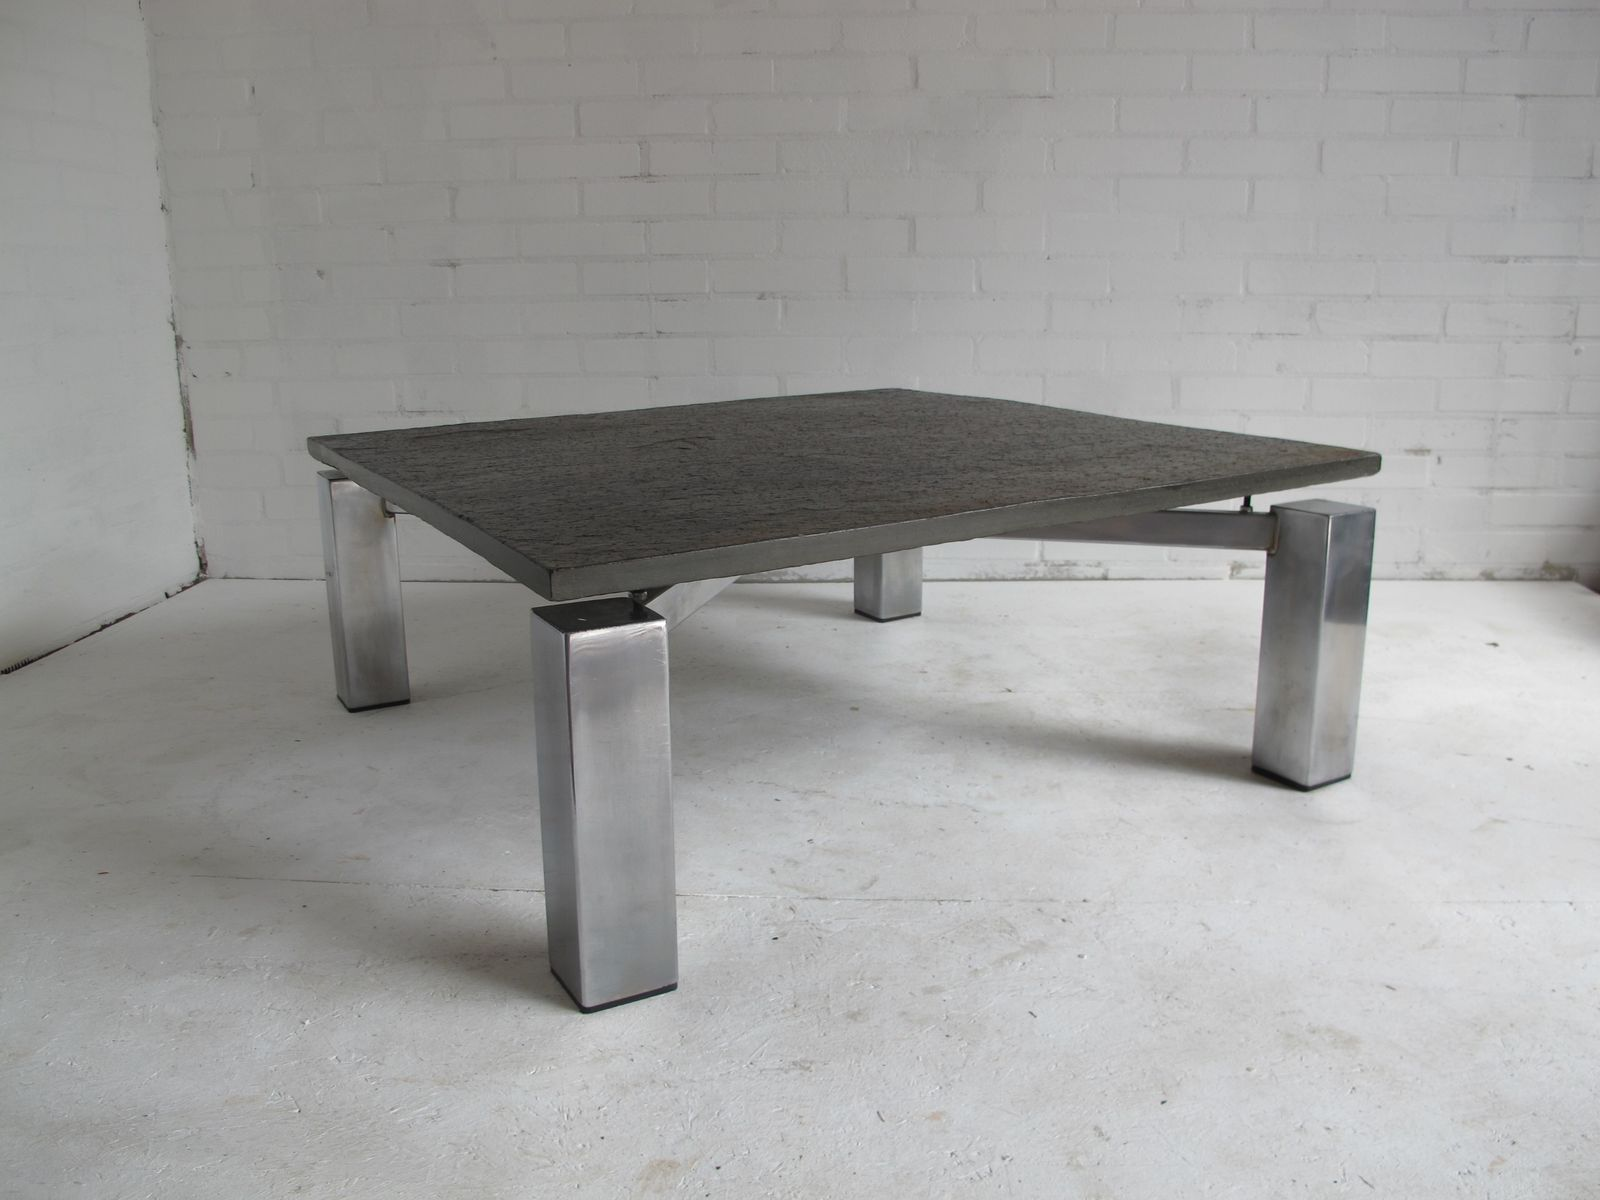 Square Vintage Steel Coffee Table With Stone Top For Sale At Pamono